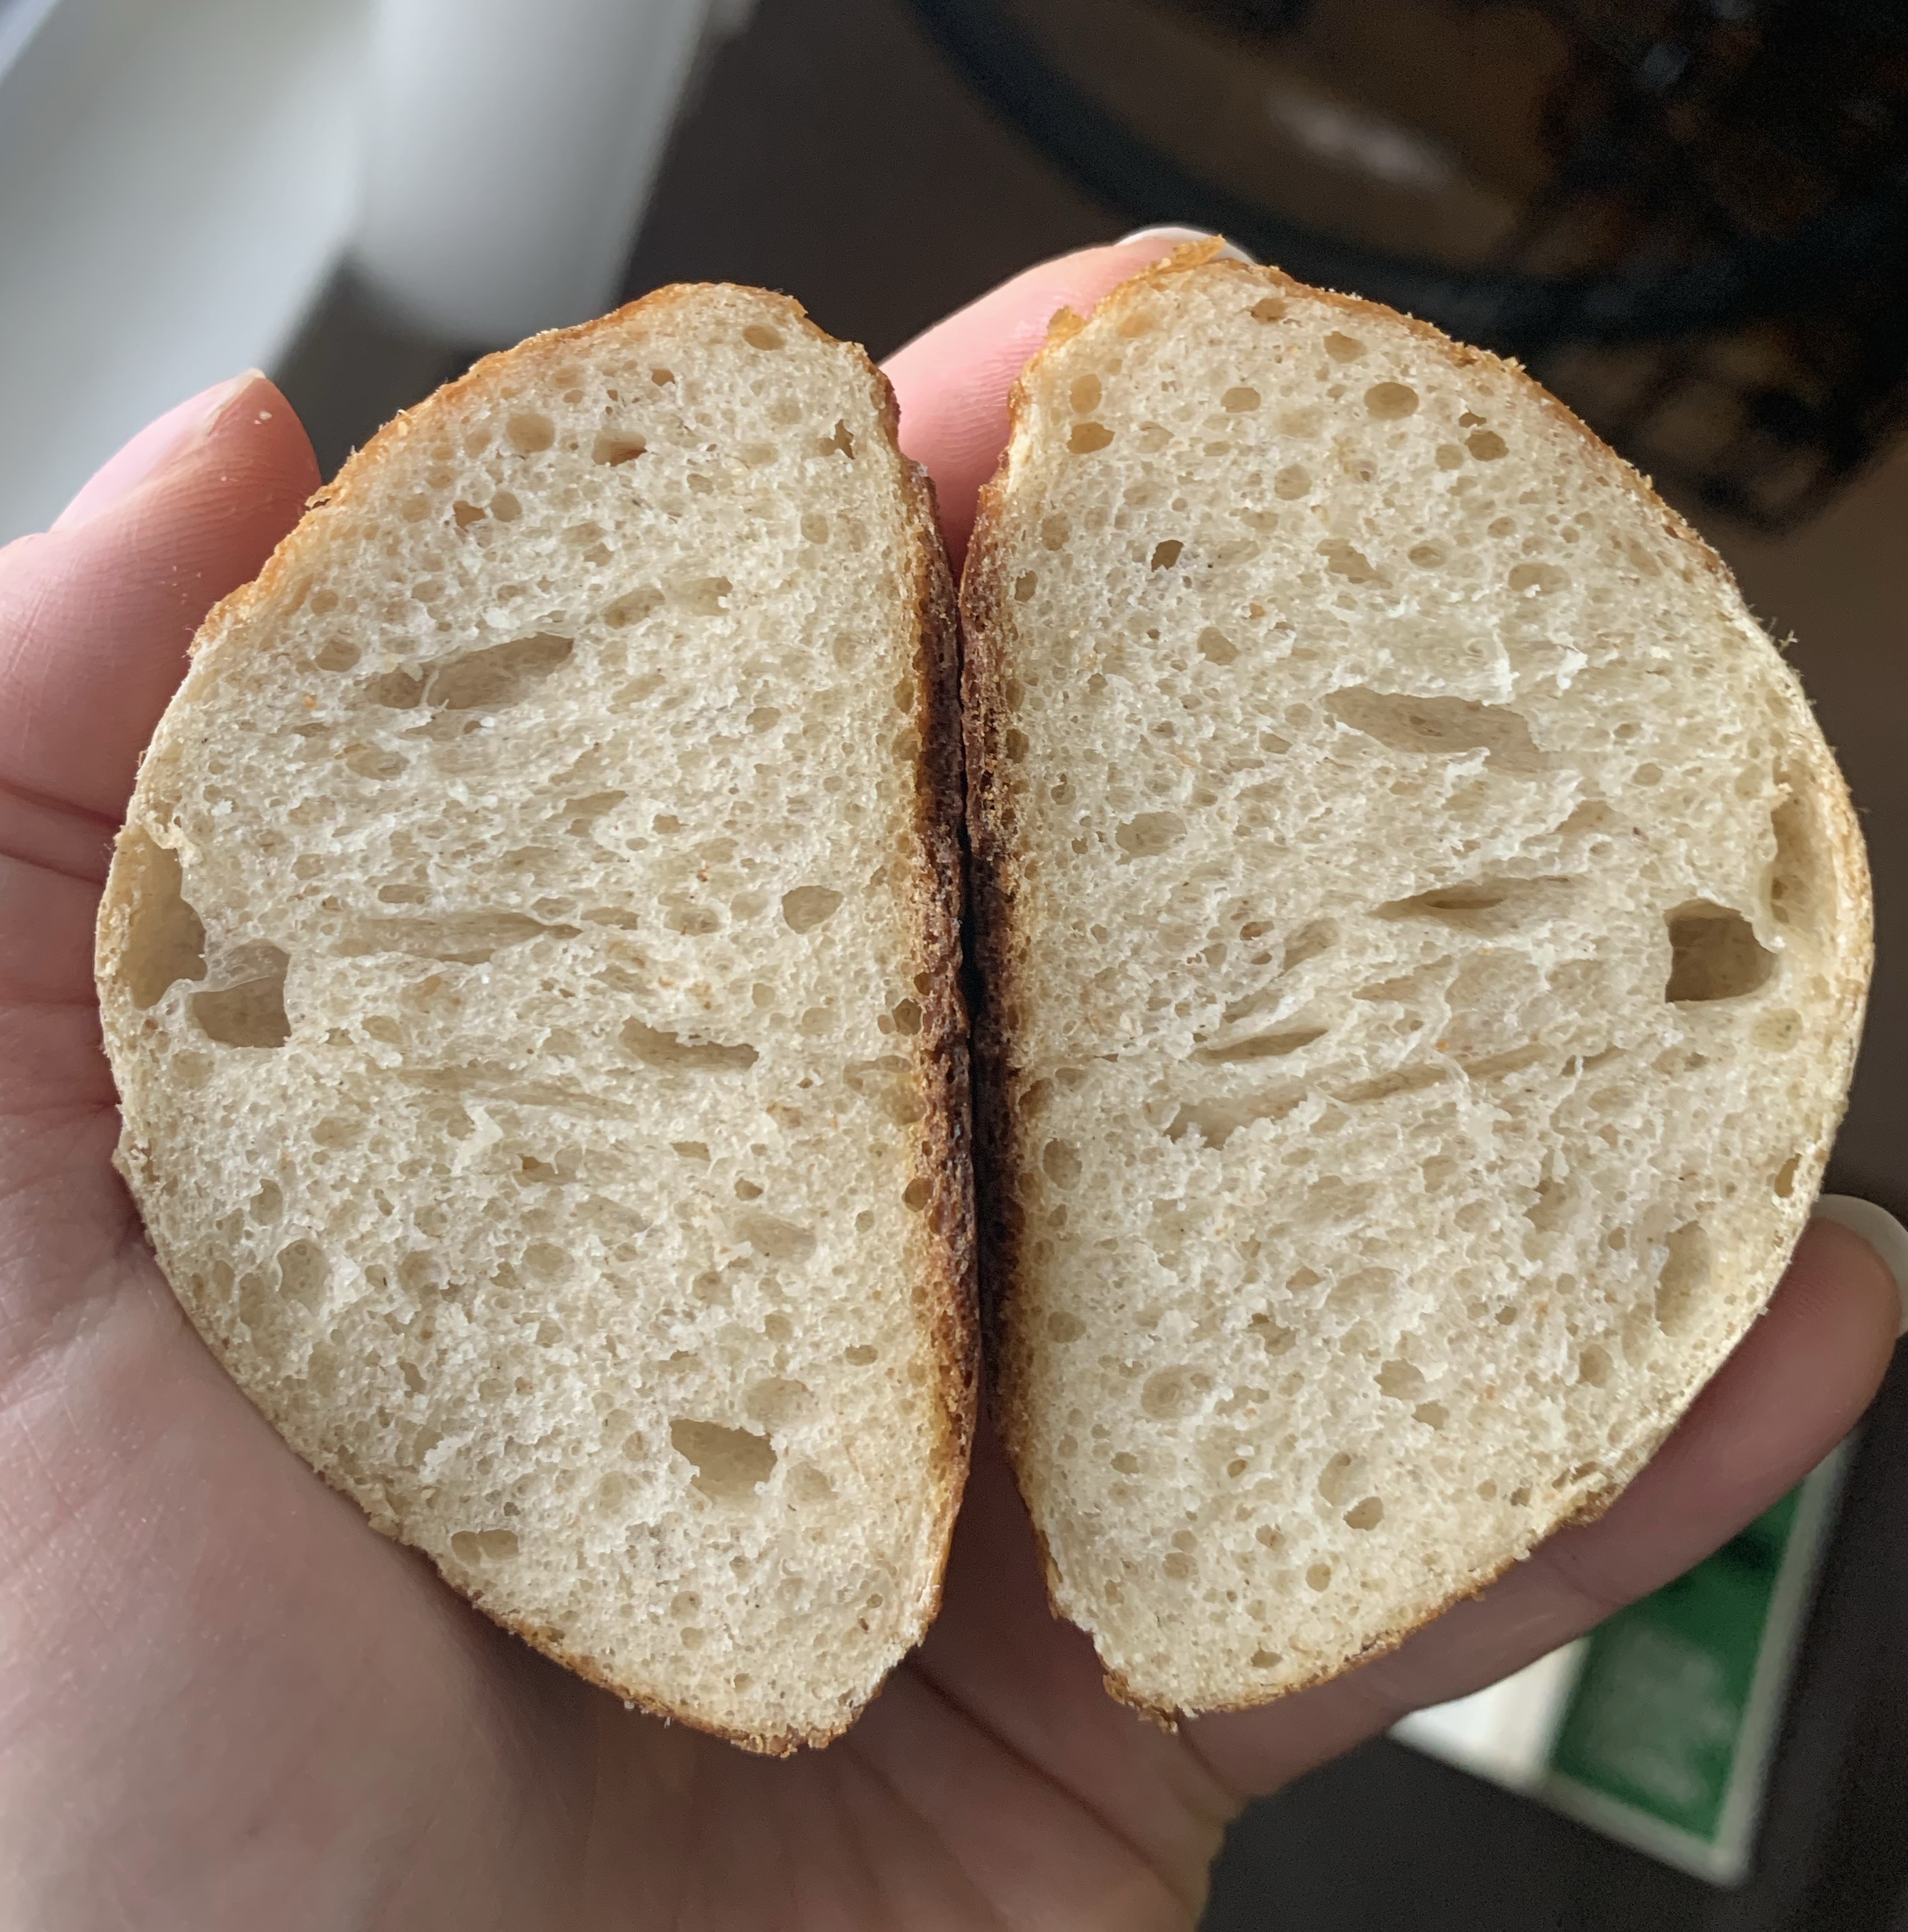 Hand holds both halves of a pretzel roll, showing the airy crumb inside.